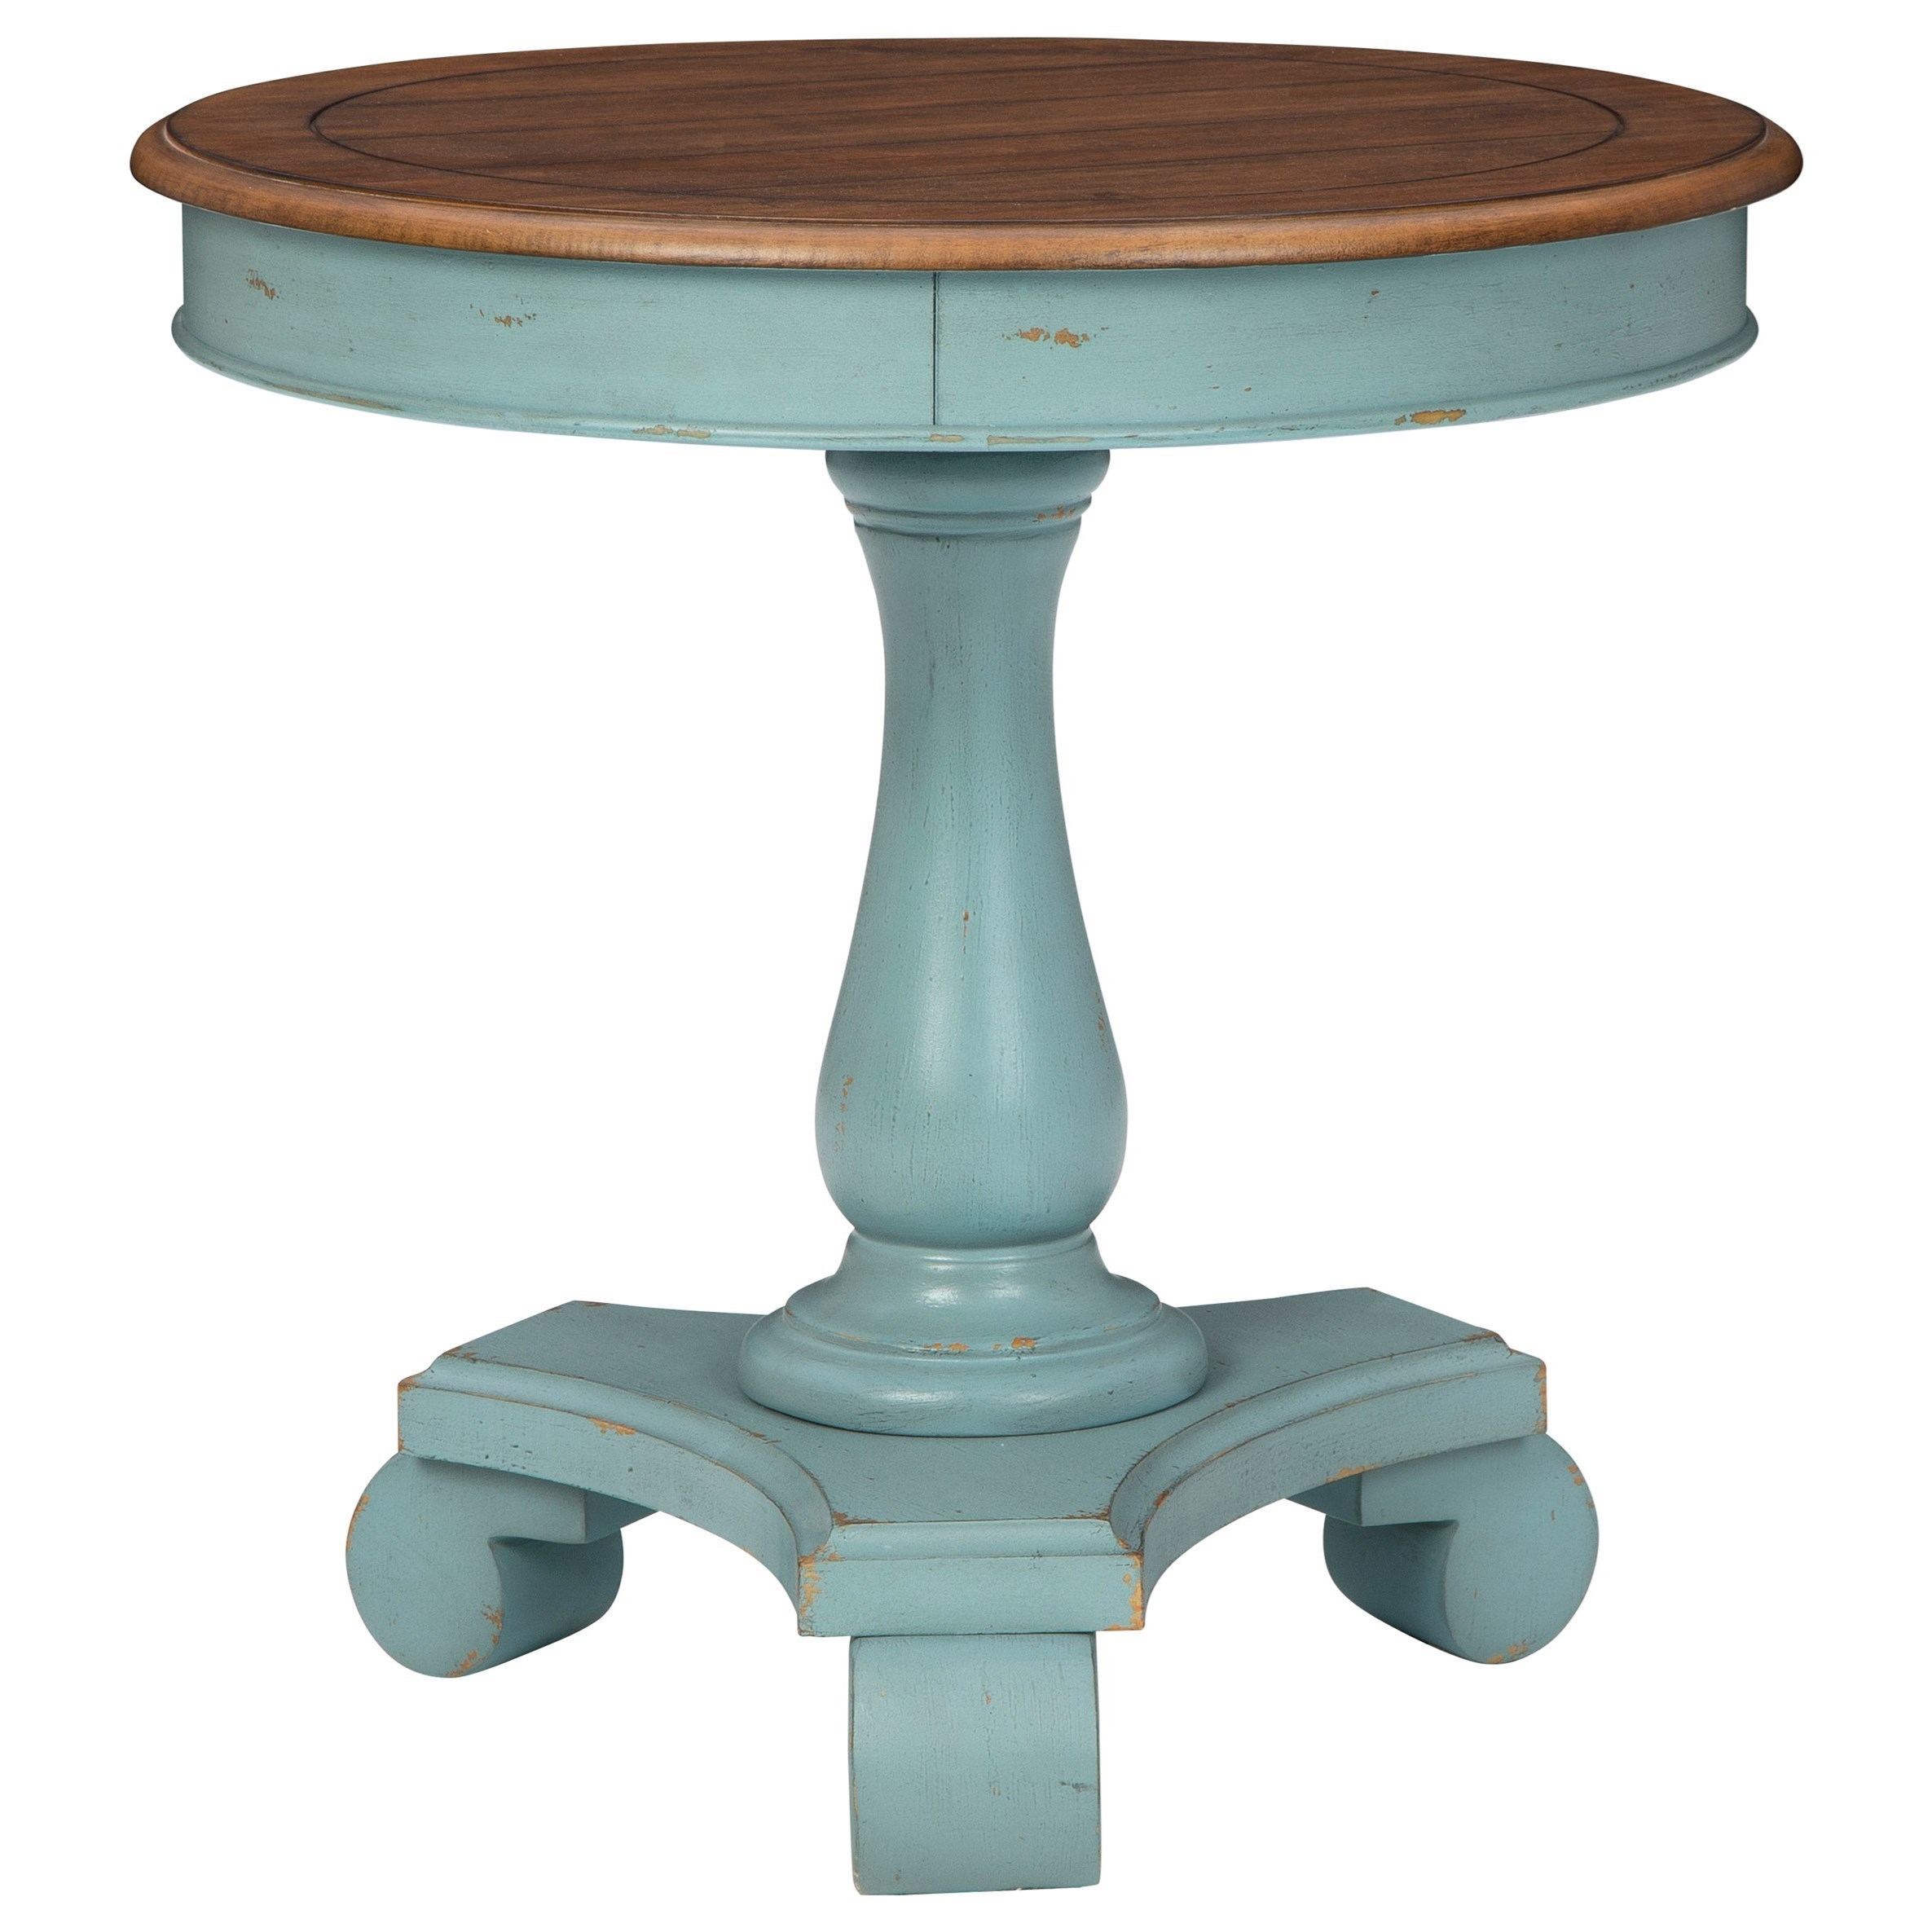 Antique Teal/Brown Round Single Pedestal Accent Table